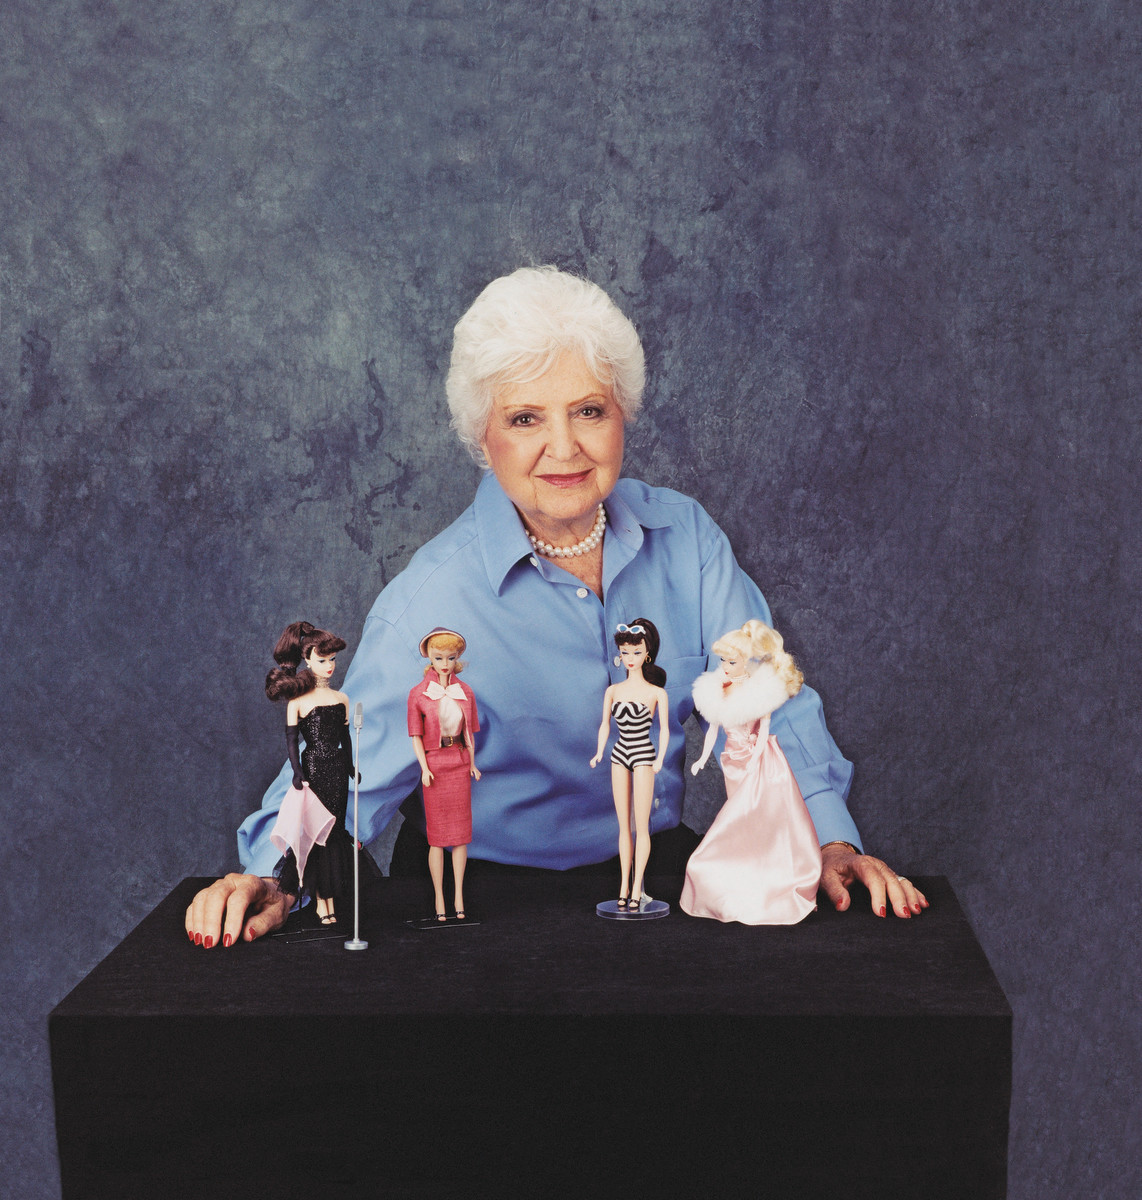 Ruth Handler was fiercely independent with the ability to dream big. She sought to have those same traits reflected in Barbie. Image courtesy of the Schlesinger Library, Radcliffe Institute, Harvard University.